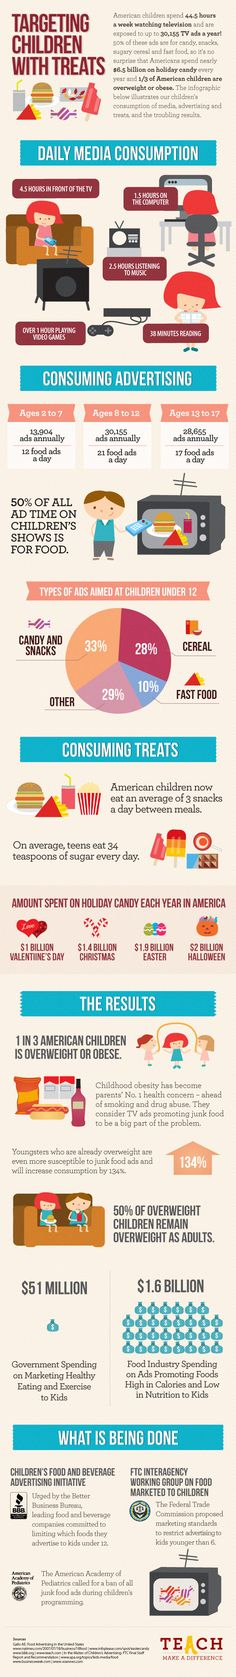 Infographic about junk food advertising and childhood obesity